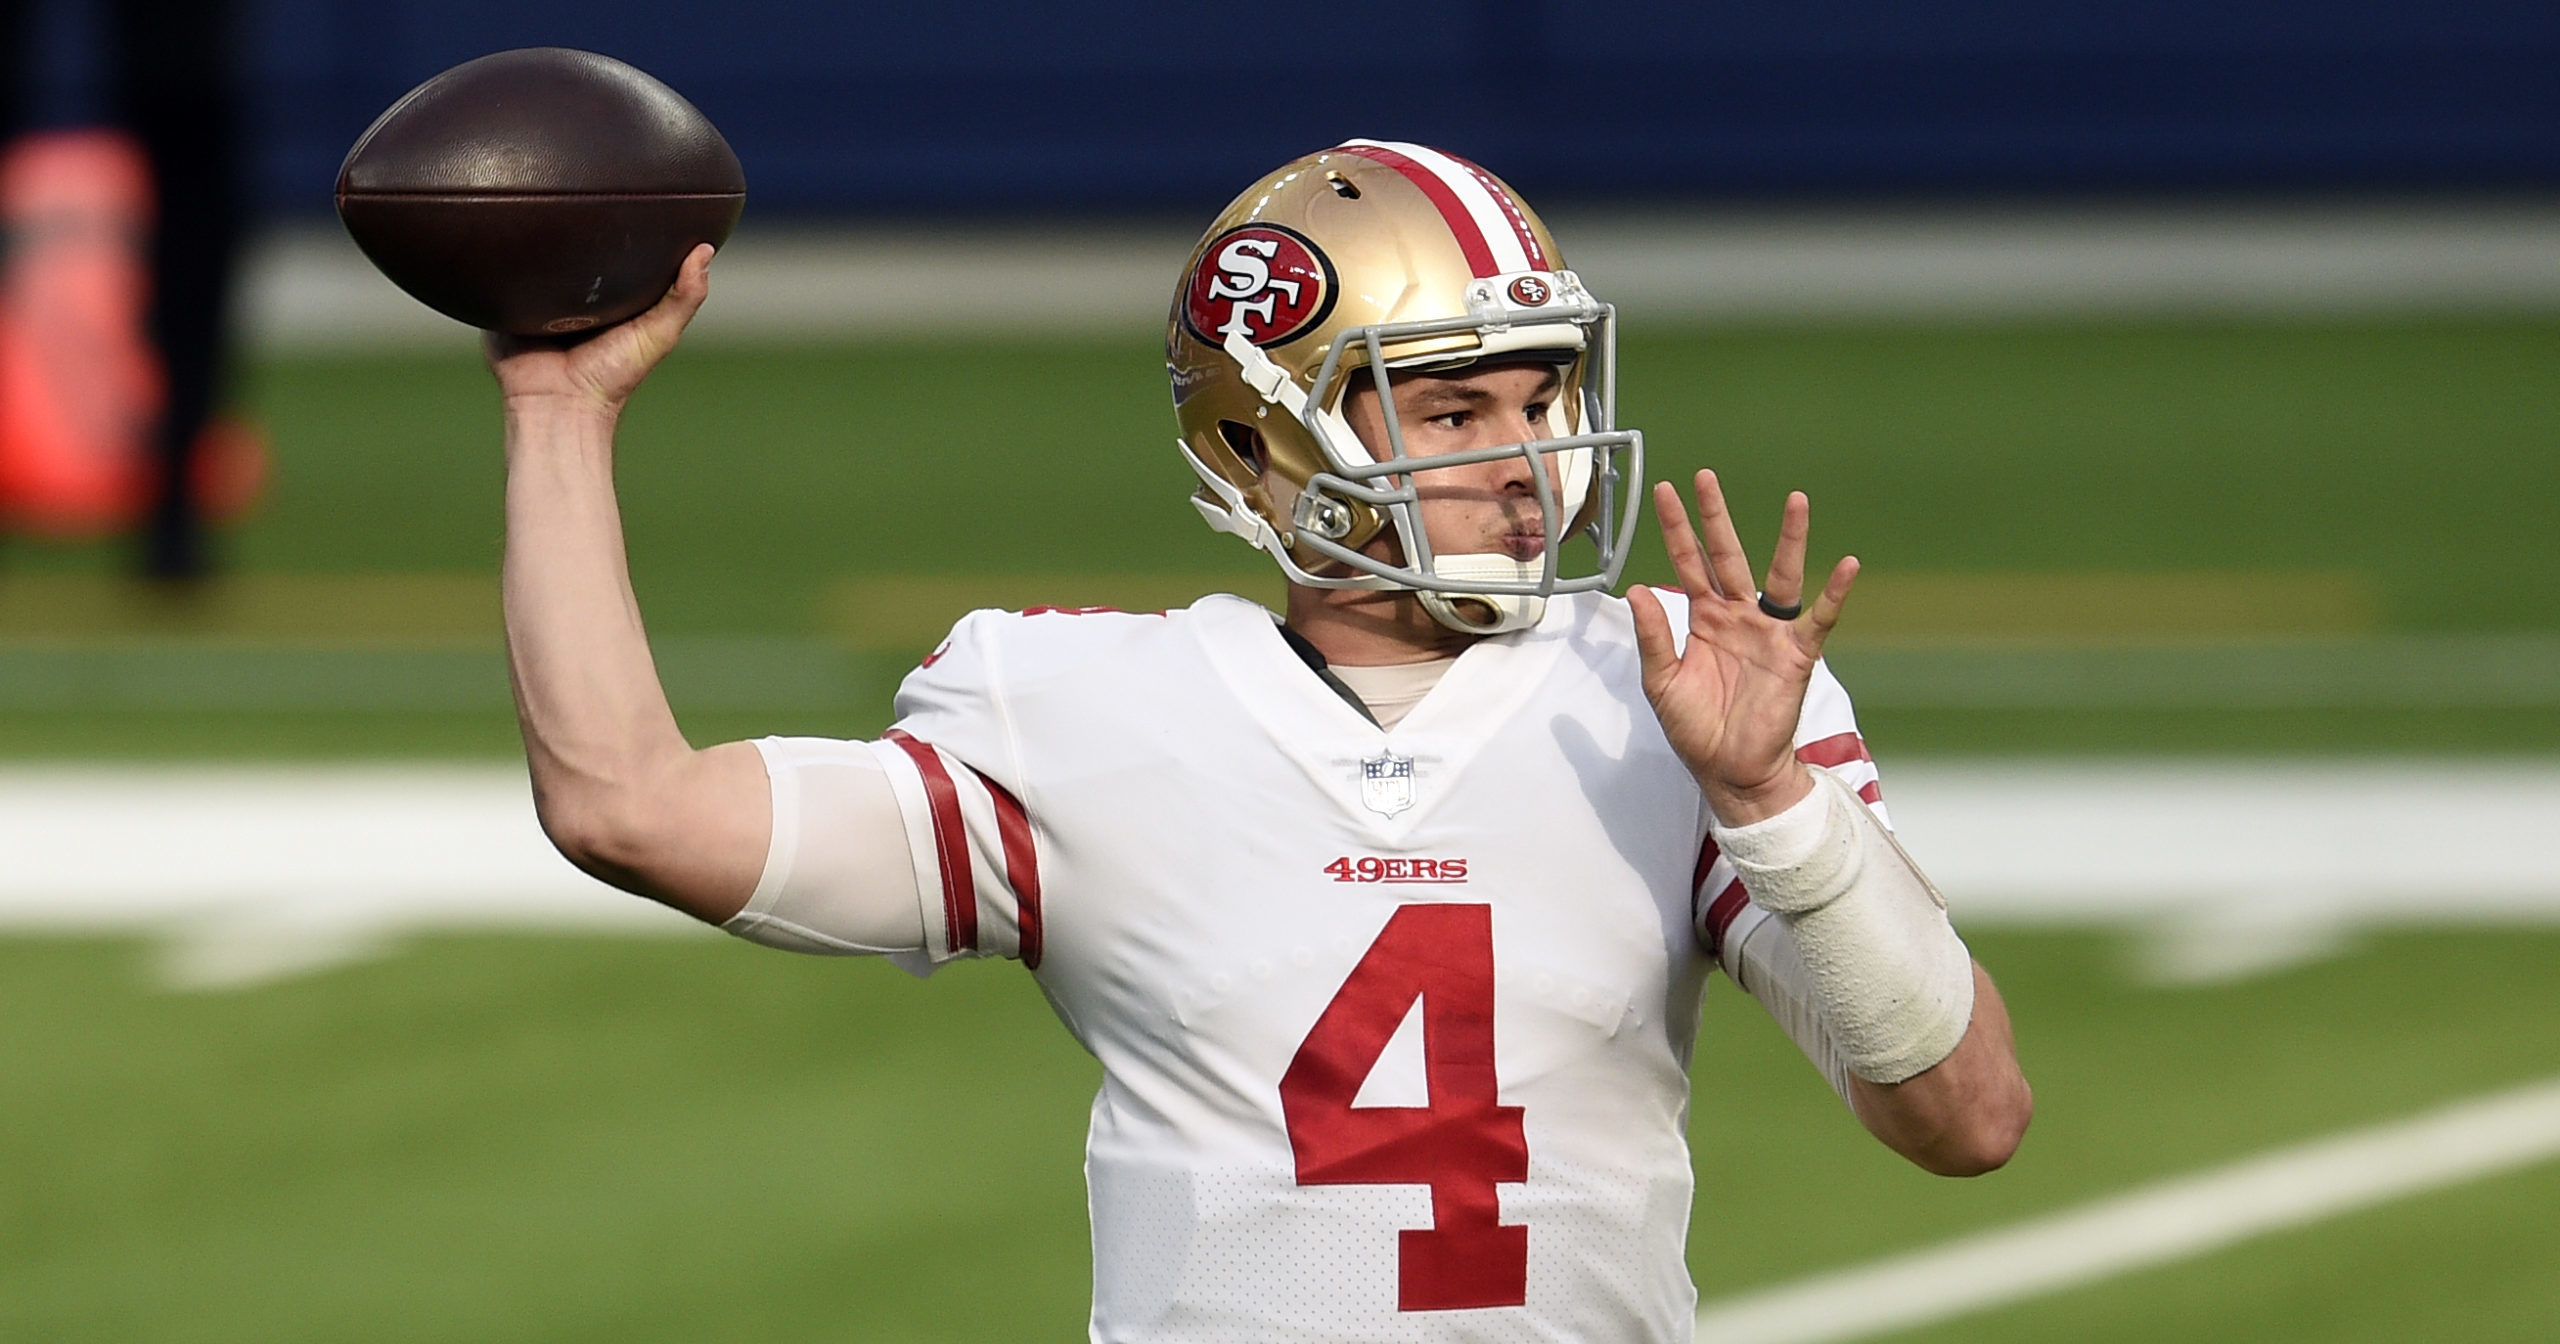 San Francisco 49ers quarterback Nick Mullens throws against the Los Angeles Rams during the first half of an NFL football game on Nov. 29, 2020, in Inglewood, California.